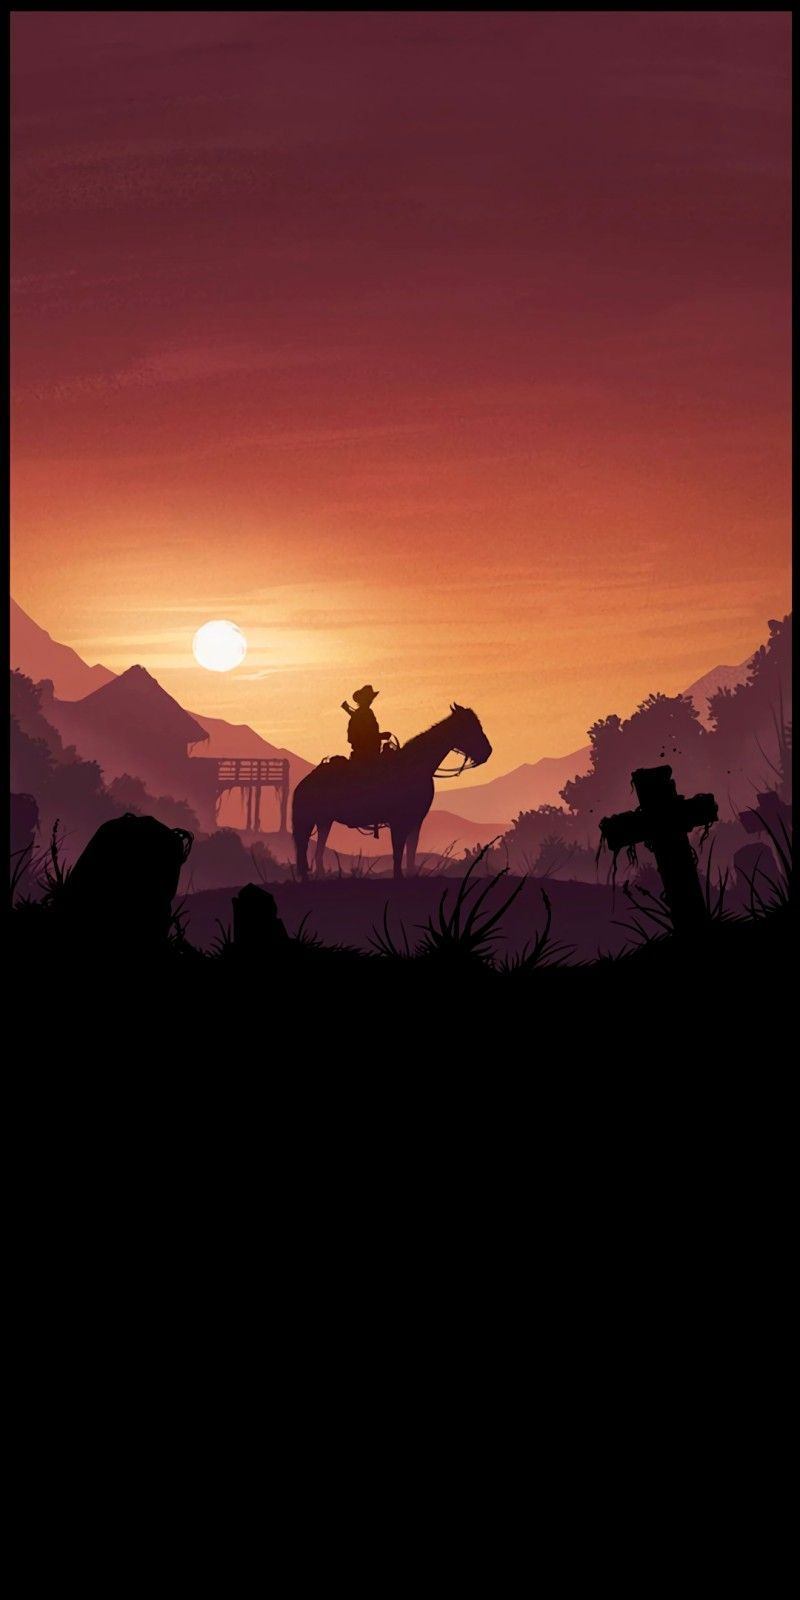 Pin By Linh Nguyen On Videogames Red Dead Redemption Art Red Dead Redemption Artwork Android Wallpaper Red